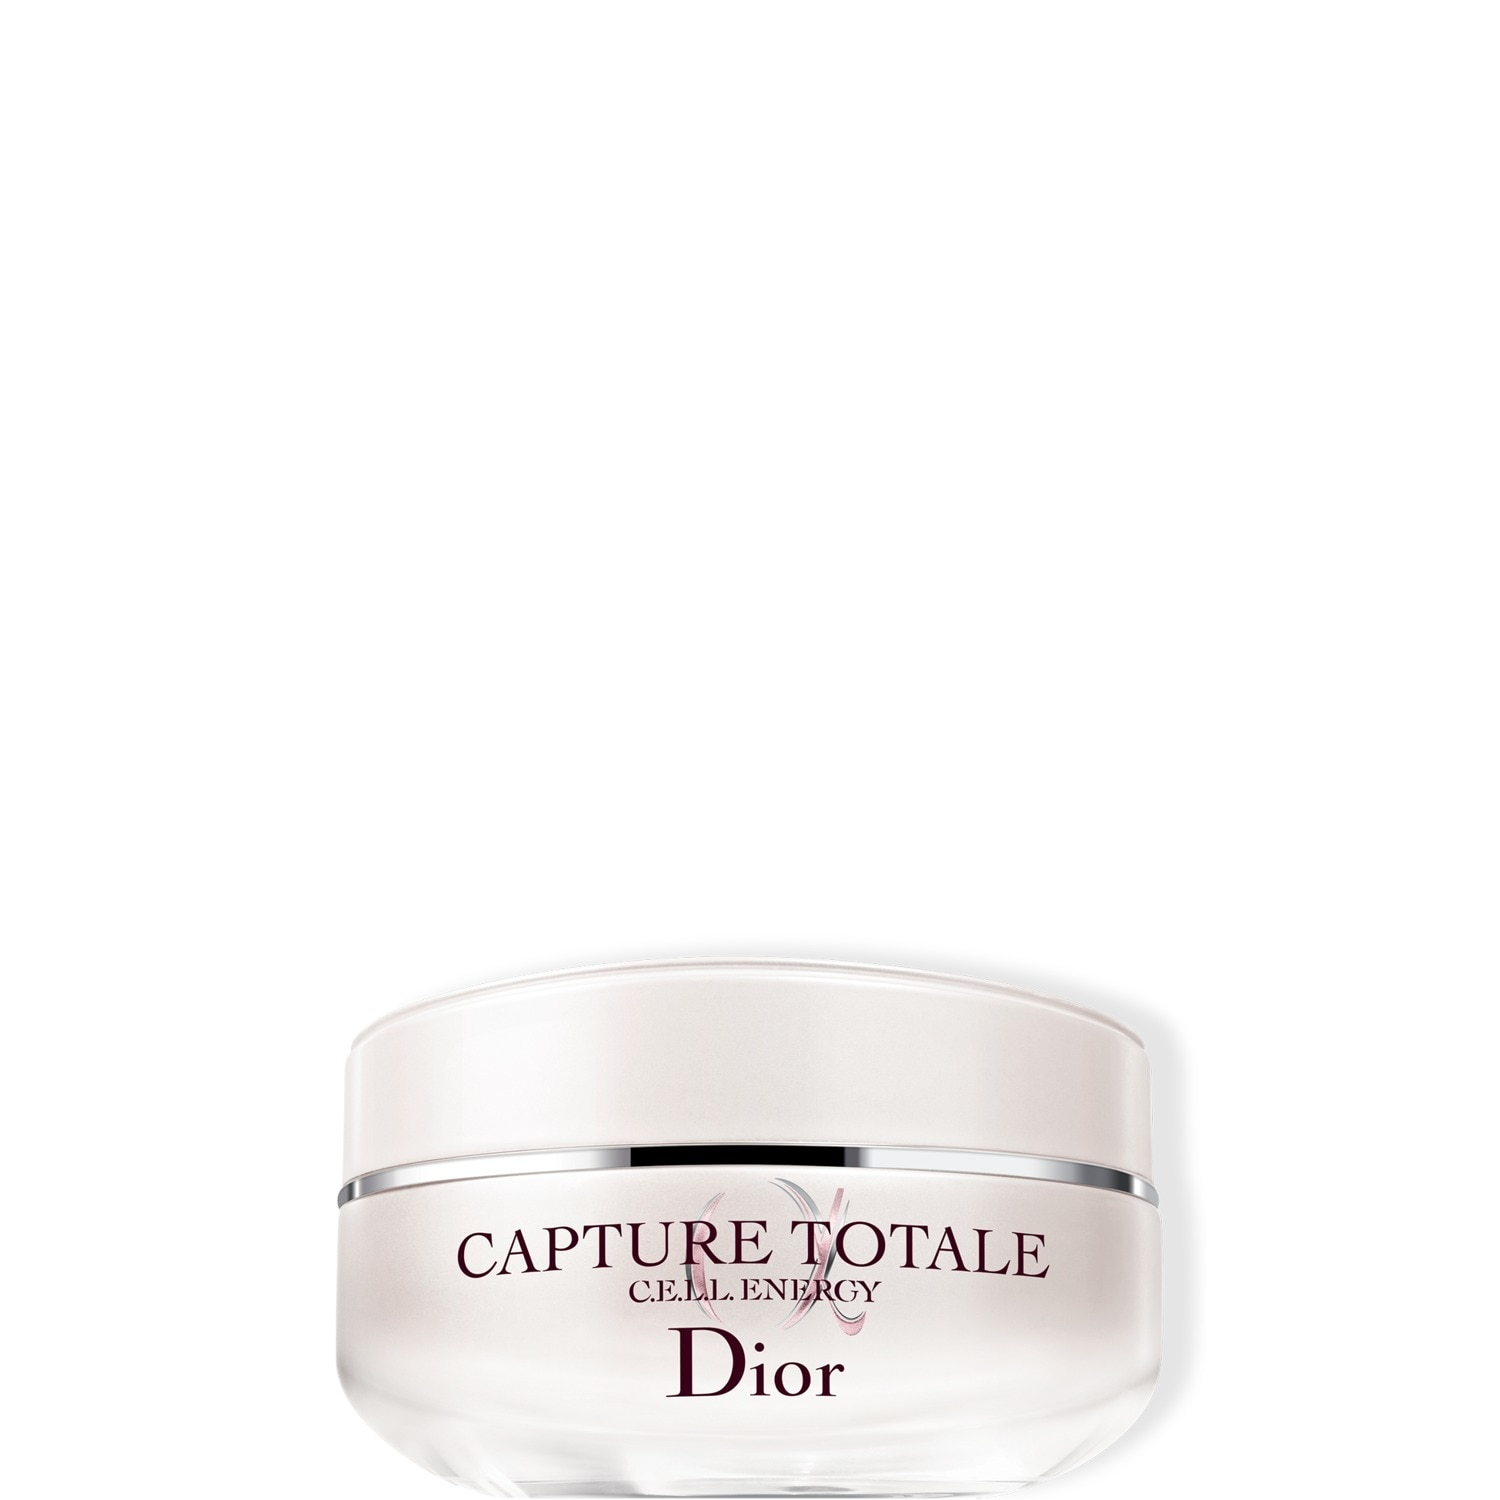 CAPTURE TOTALE FIRMING & WRINKLE-CORRECTING EYE CREAM 15ML (CREMA DE OJOS)